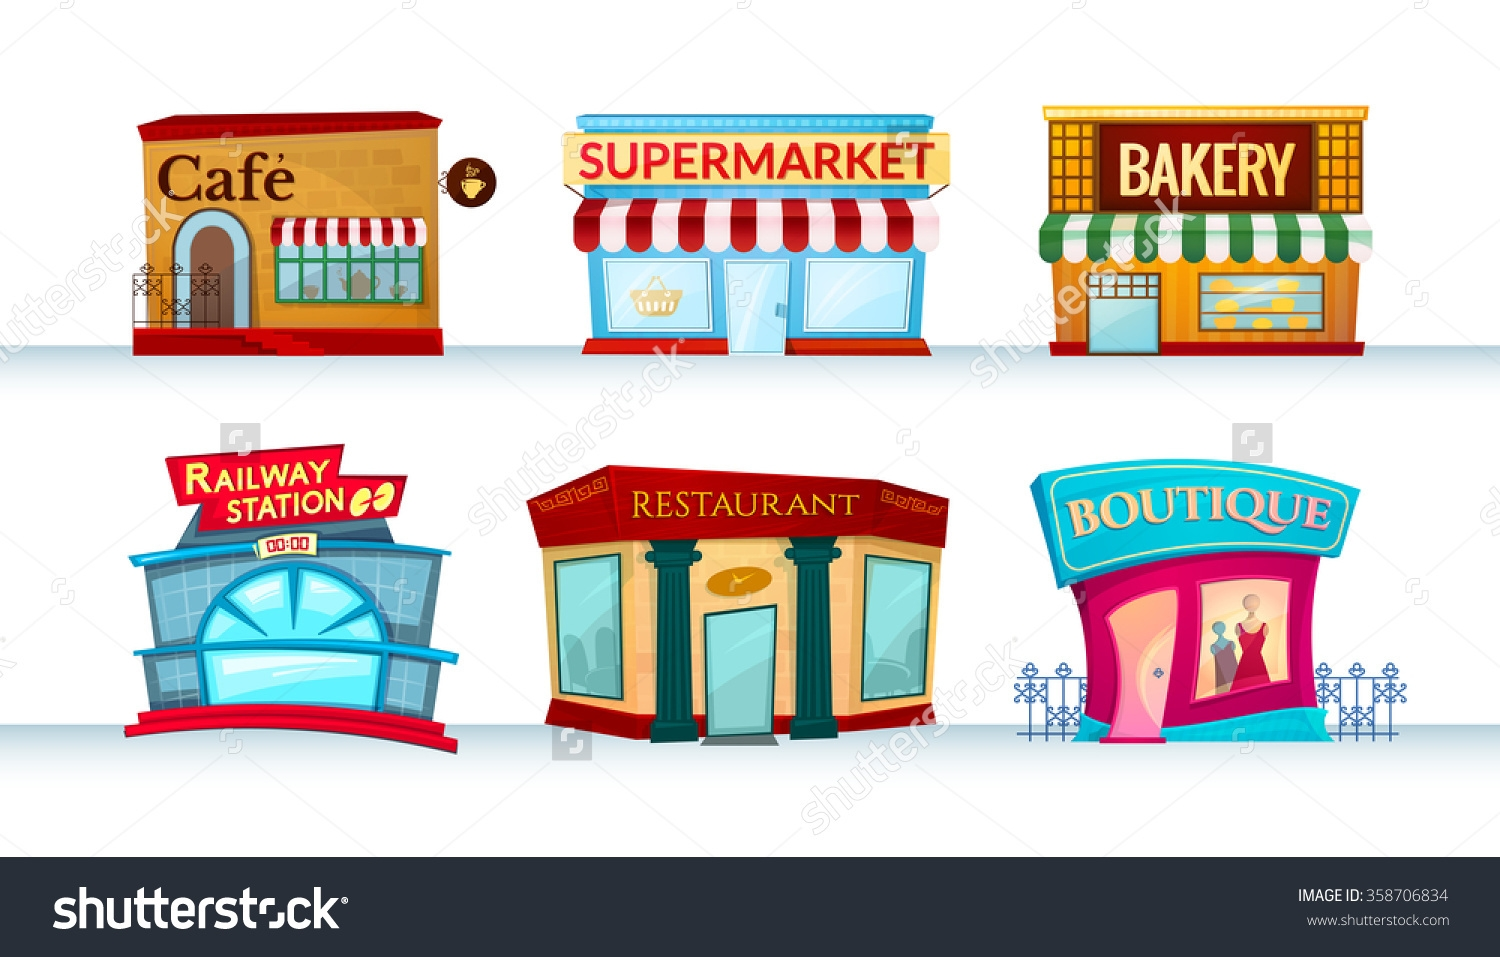 place clipart places different facilities shops vector icons canteens illustration cliparts shutterstock eso 1st clipground site type alzina efl